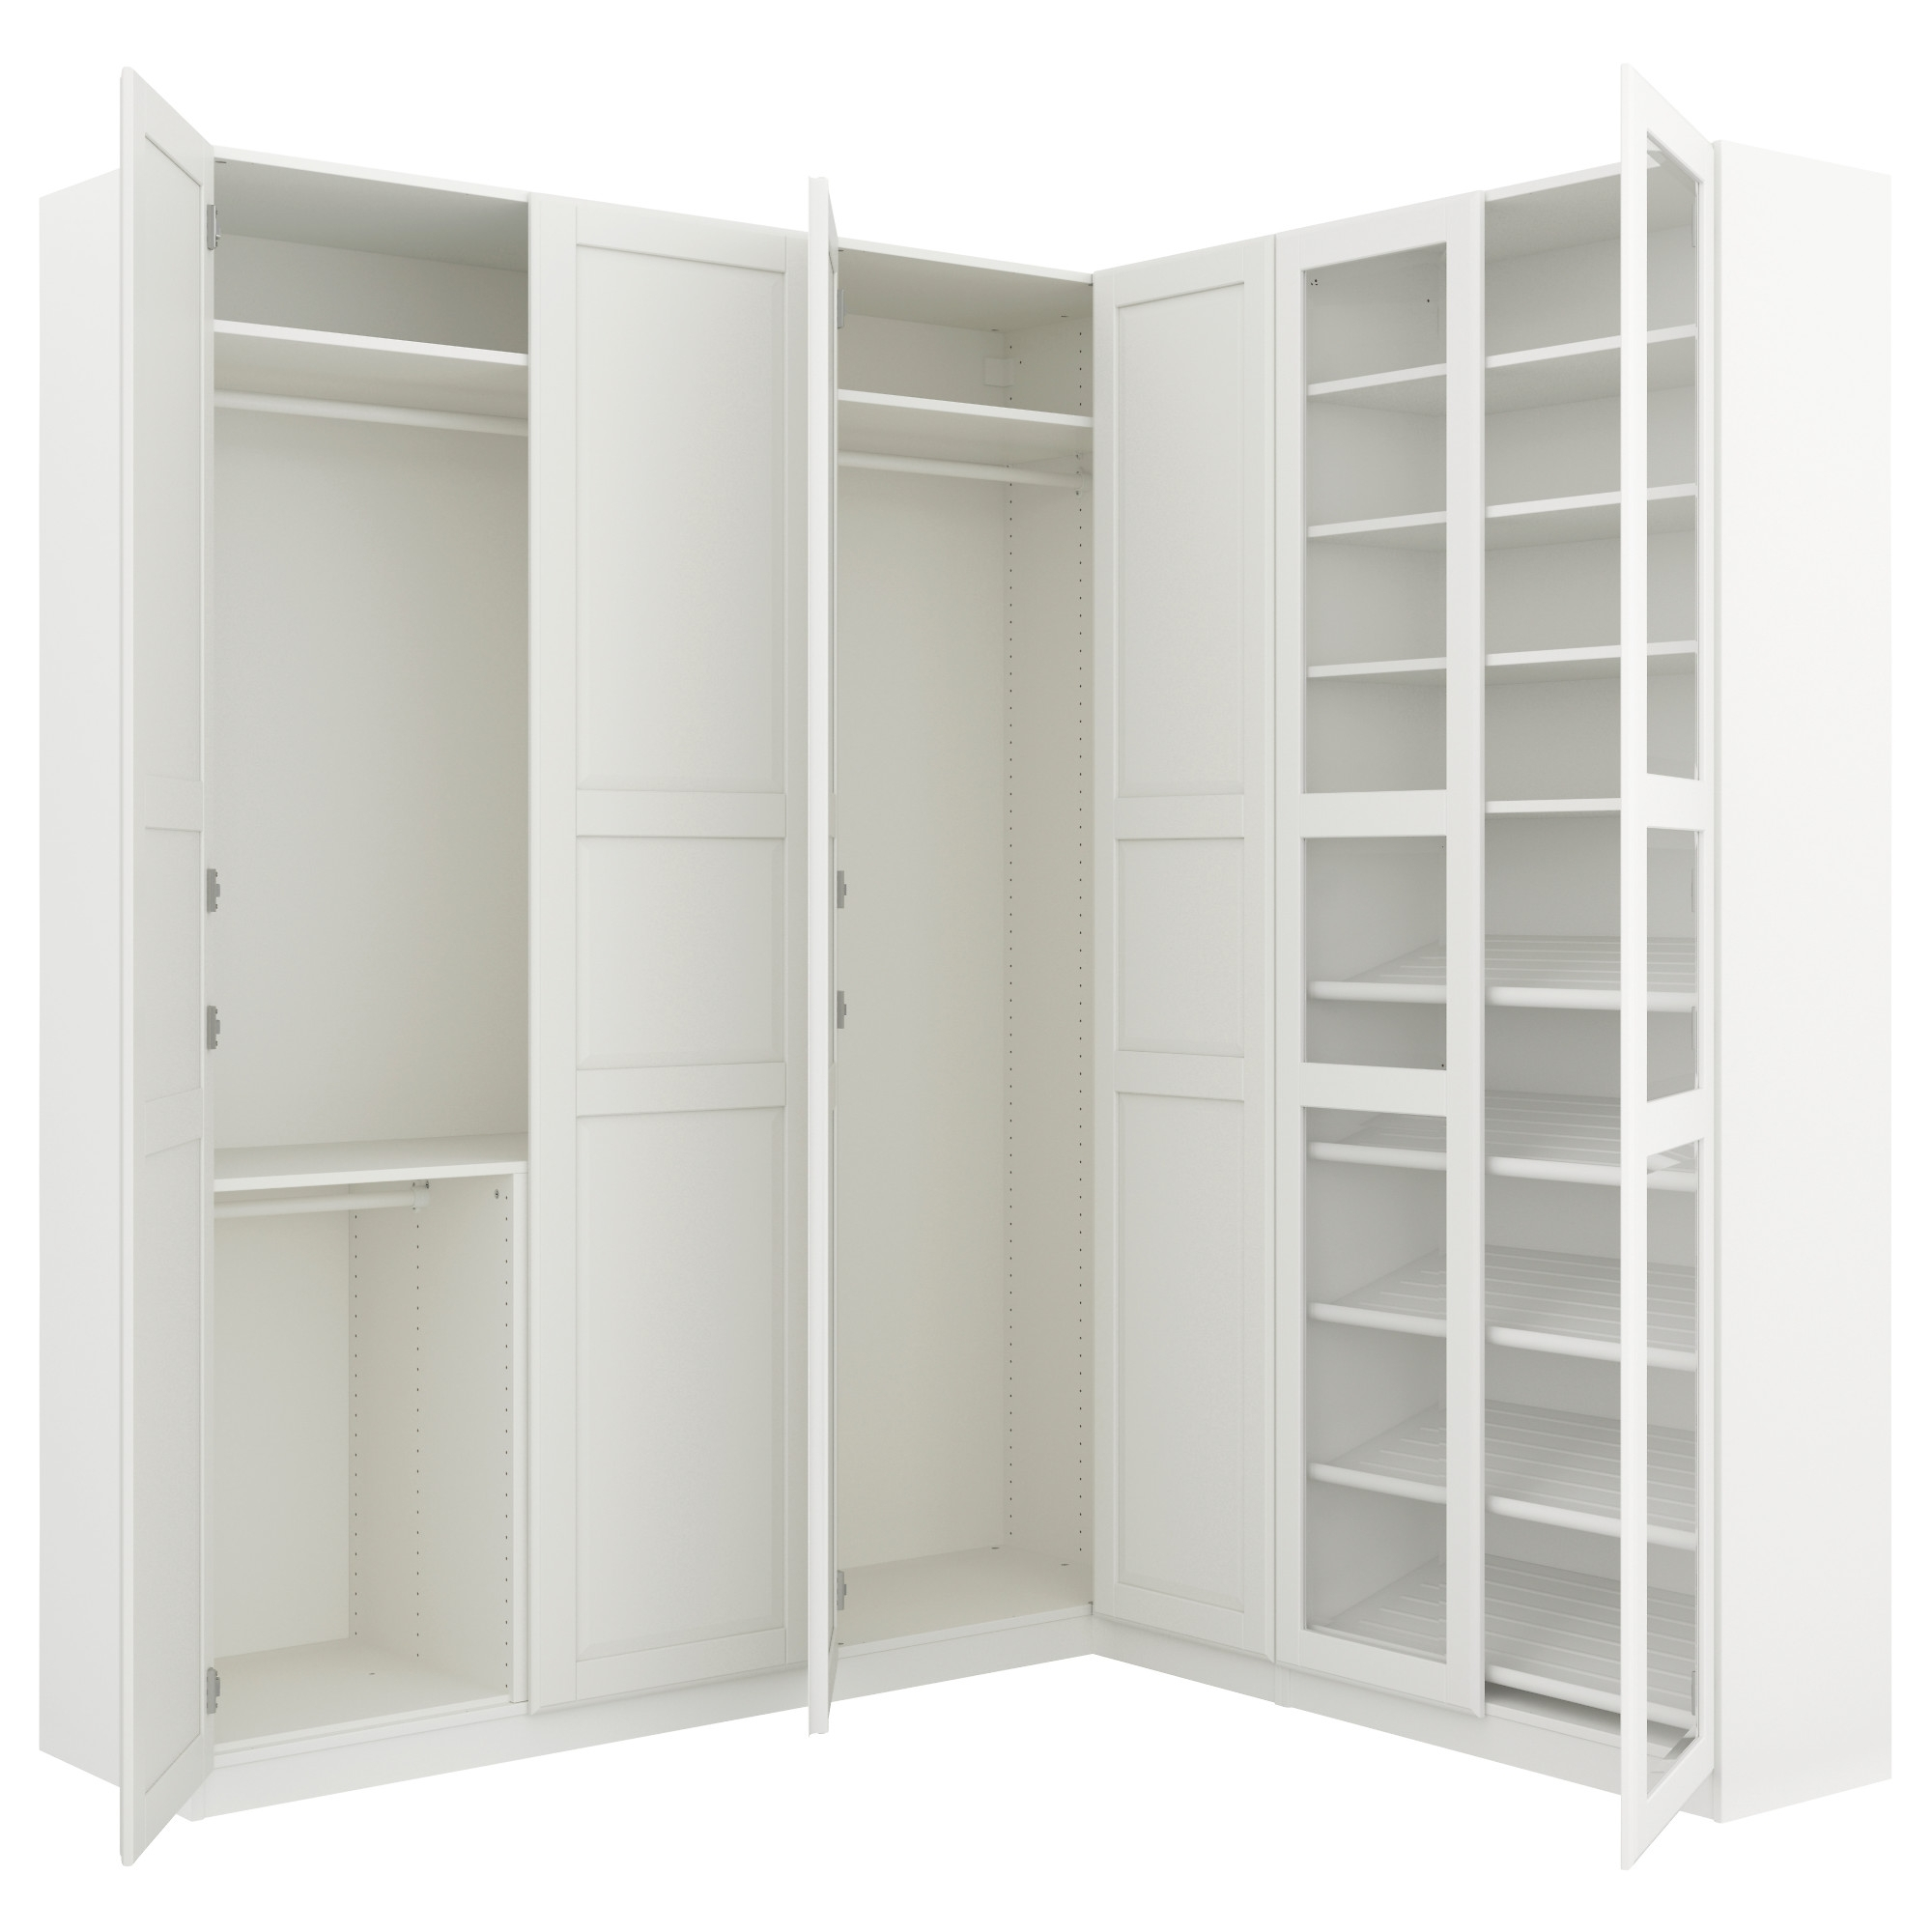 "Pax Corner Wardrobe – 82 3/4/73 7/8X93 1/8 "" – Ikea Throughout Current Corner Wardrobes (View 12 of 15)"